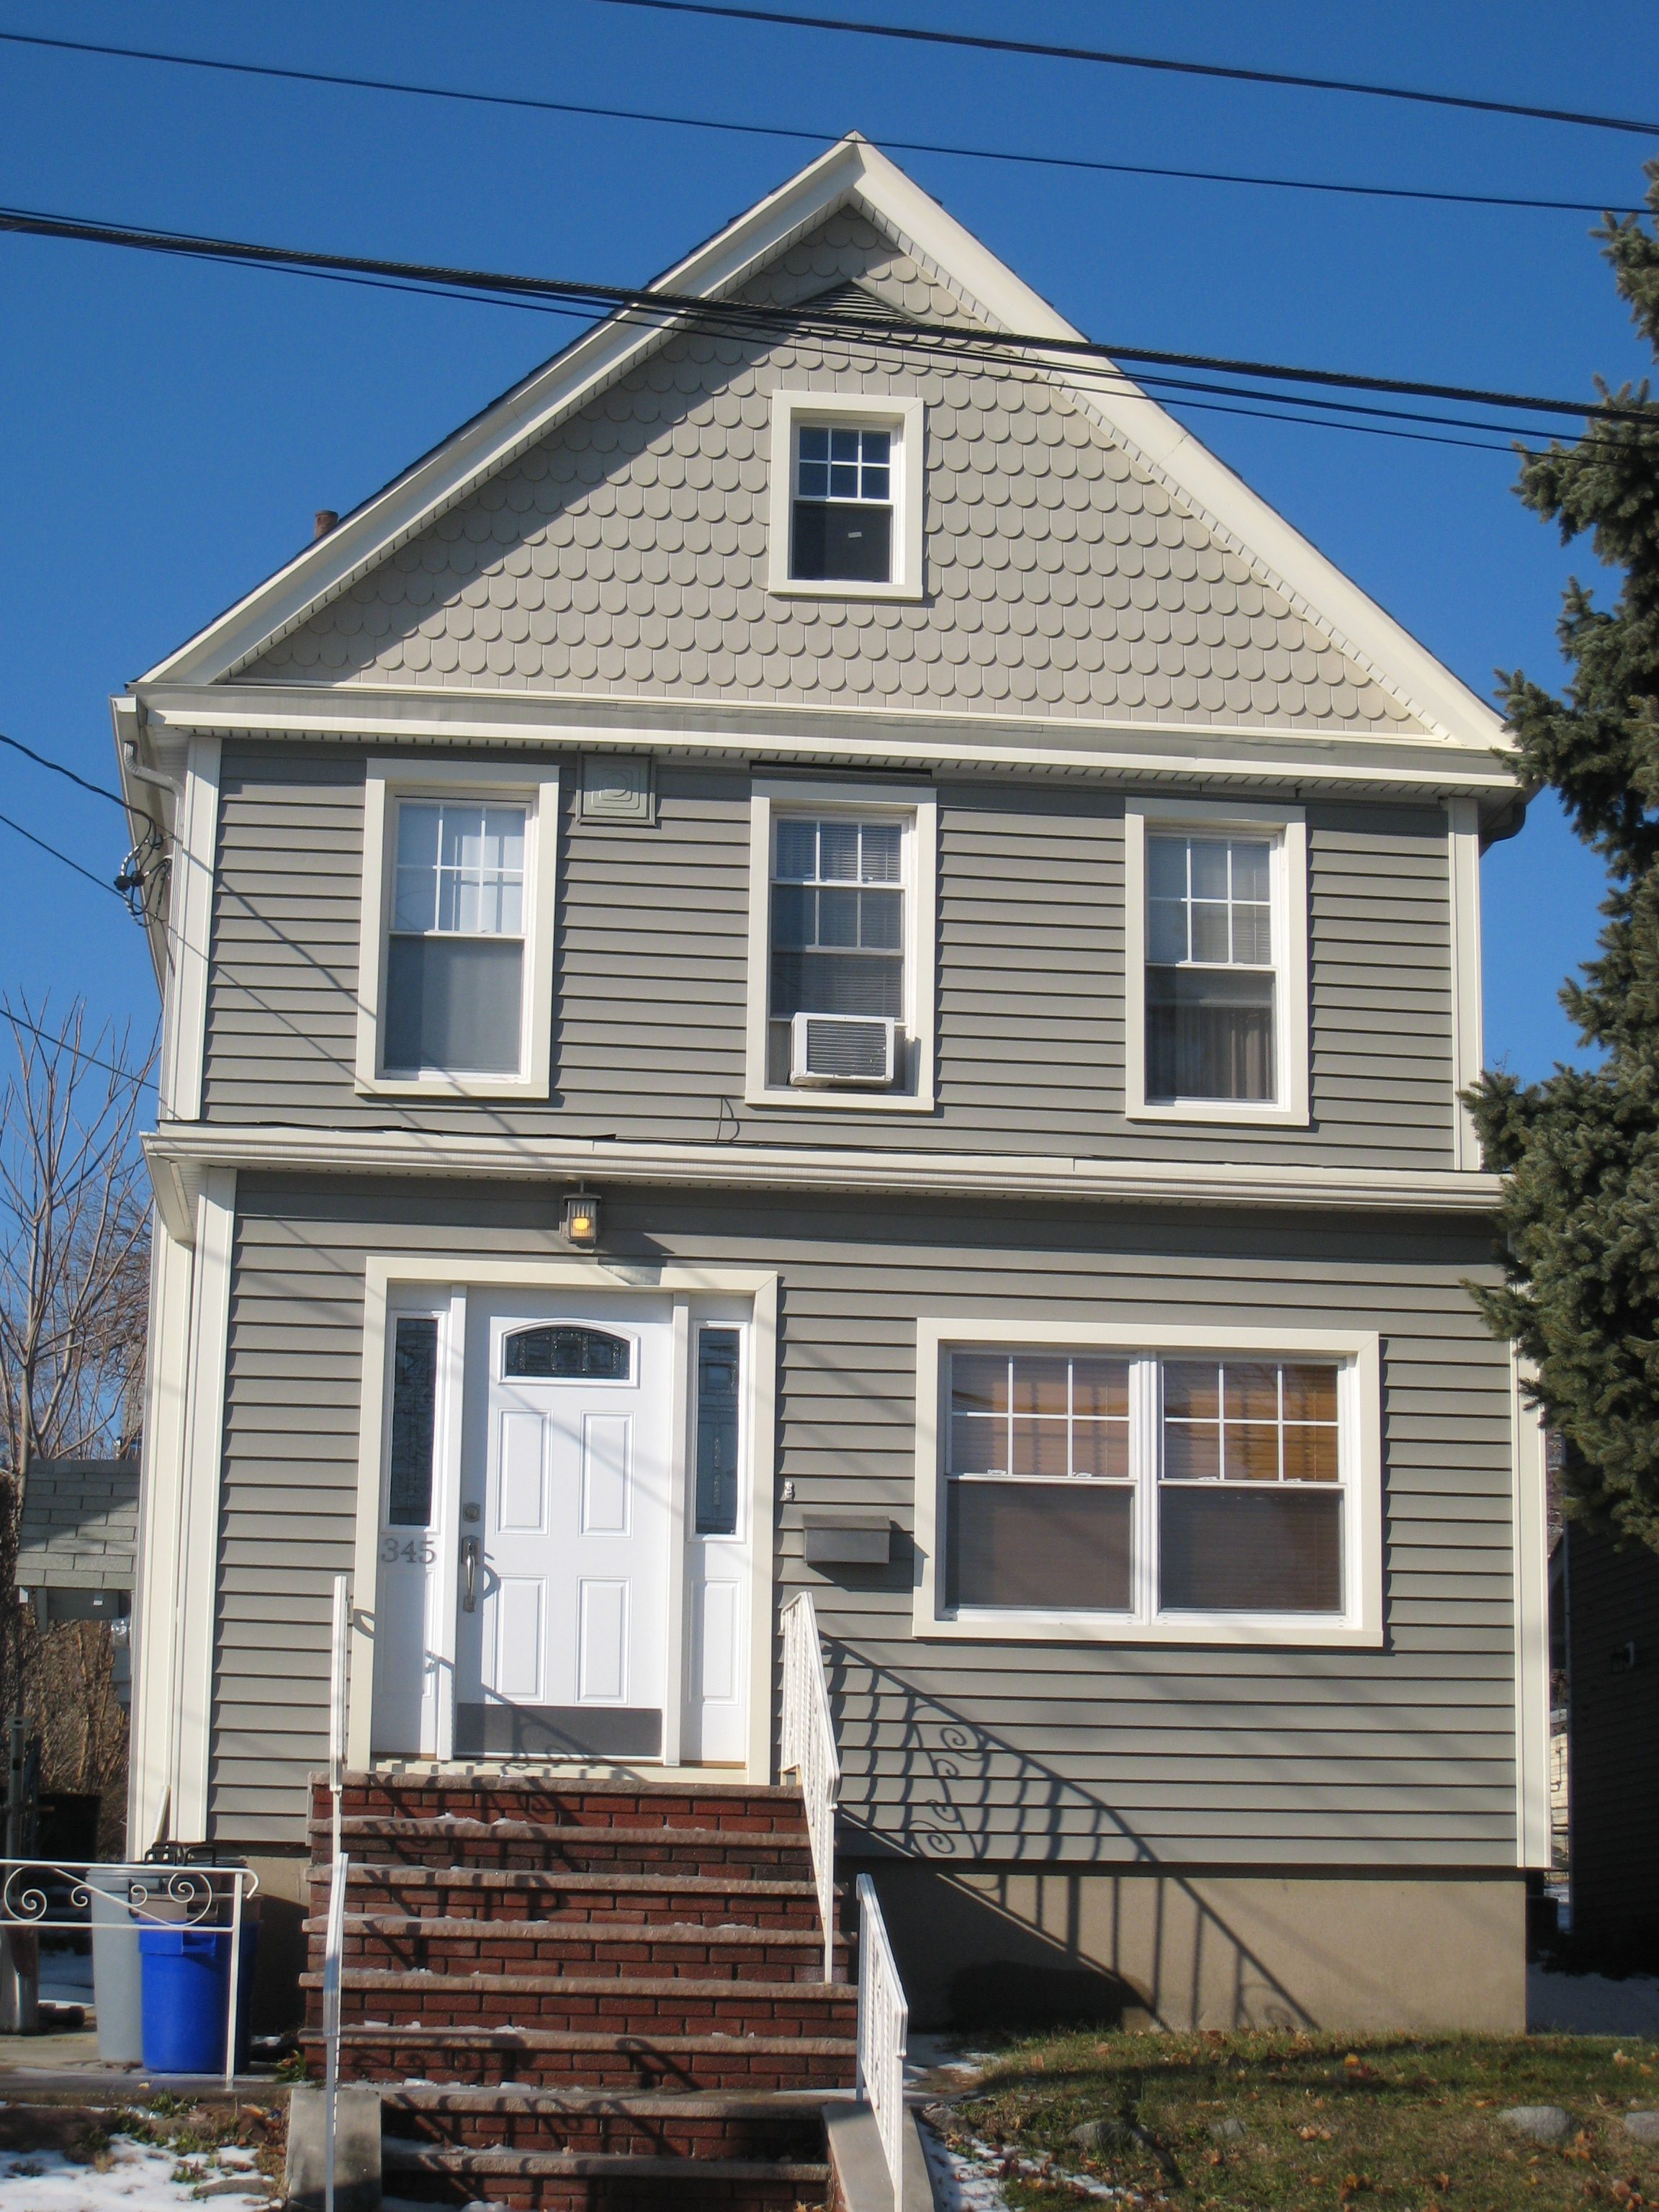 Different house siding types in bergen county nj for Types of house siding